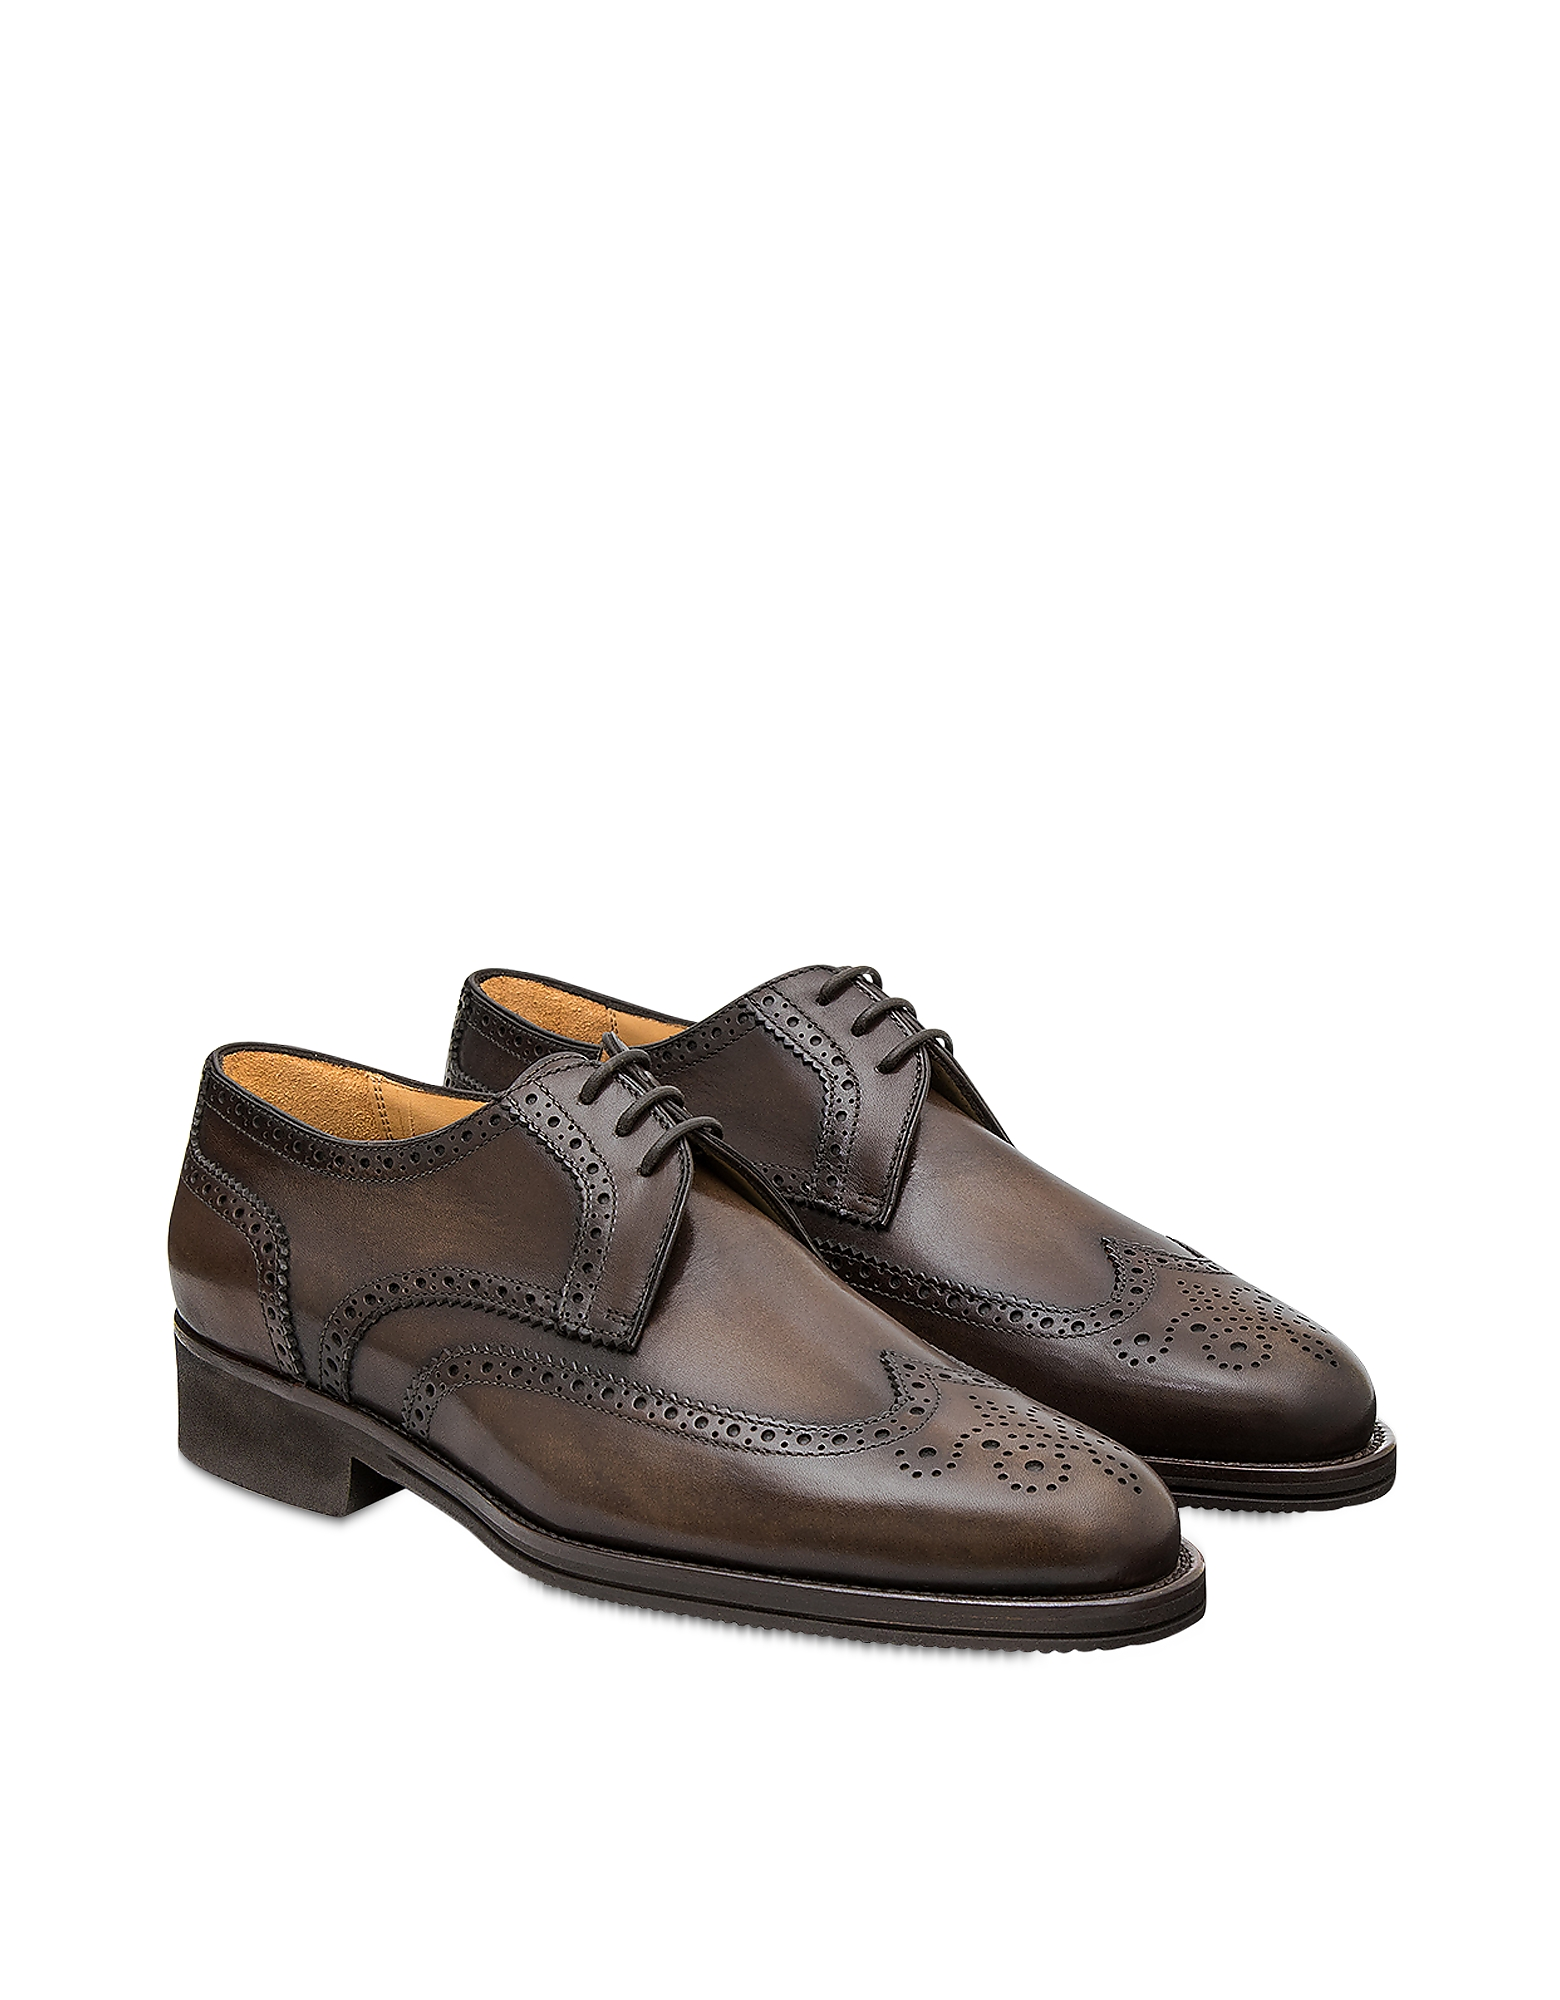 Pakerson Designer Shoes, Coffee Pisa Derby Shoe